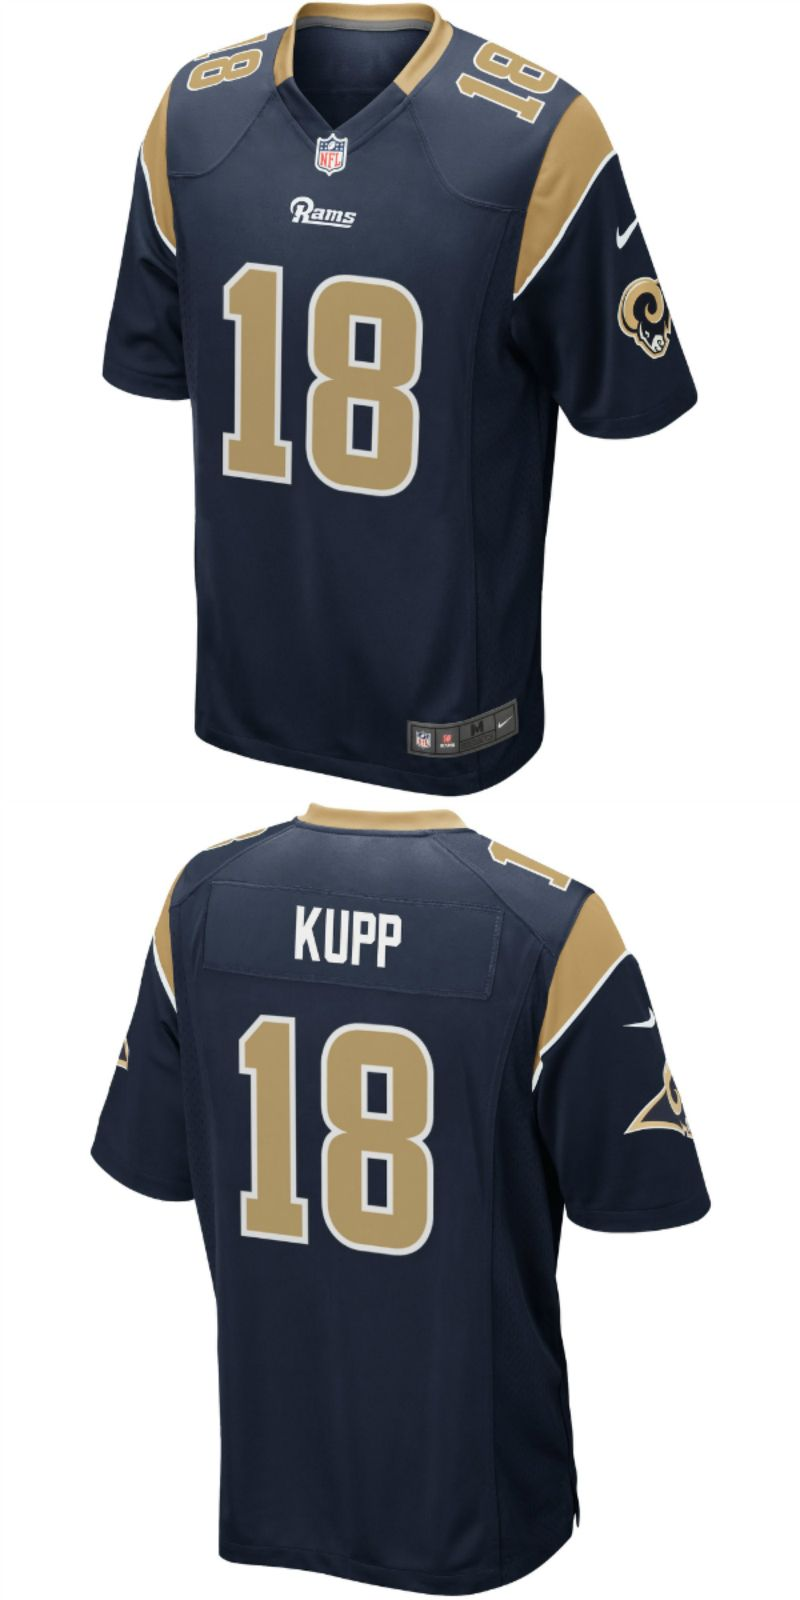 half off 08f62 9e817 UP TO 70% OFF. Cooper Kupp Los Angeles Rams Nike Game Jersey ...